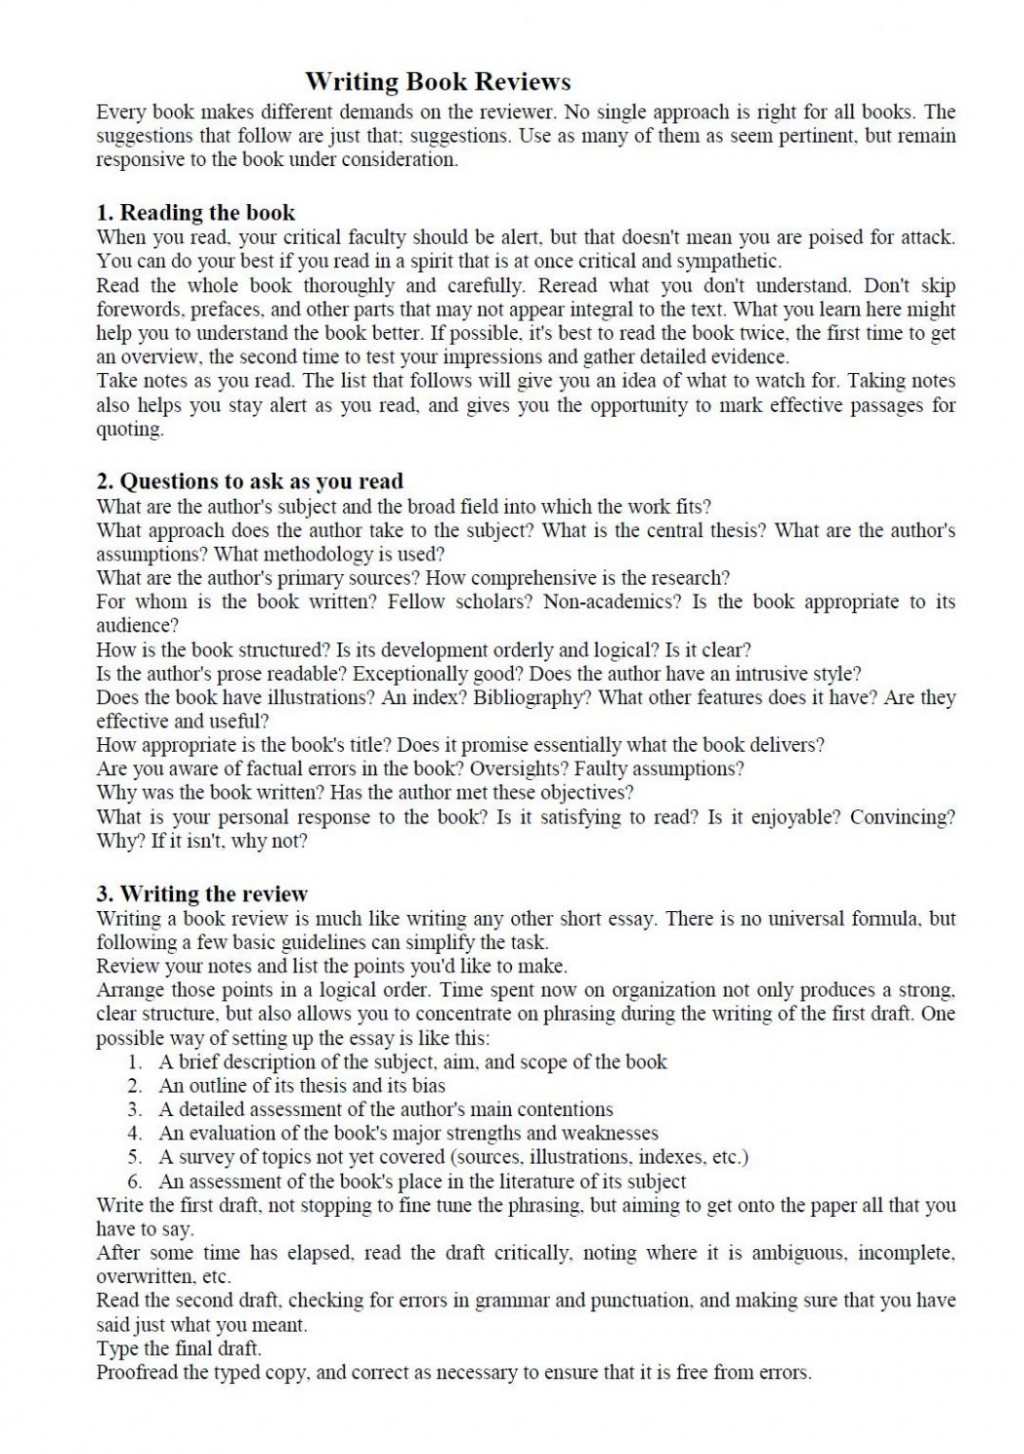 014 Best College App Essays Example Of Essay For Common Application Prompts How To Write Book R Examples Admission Topics Format Magnificent 2018 Ivy League New York Times Large